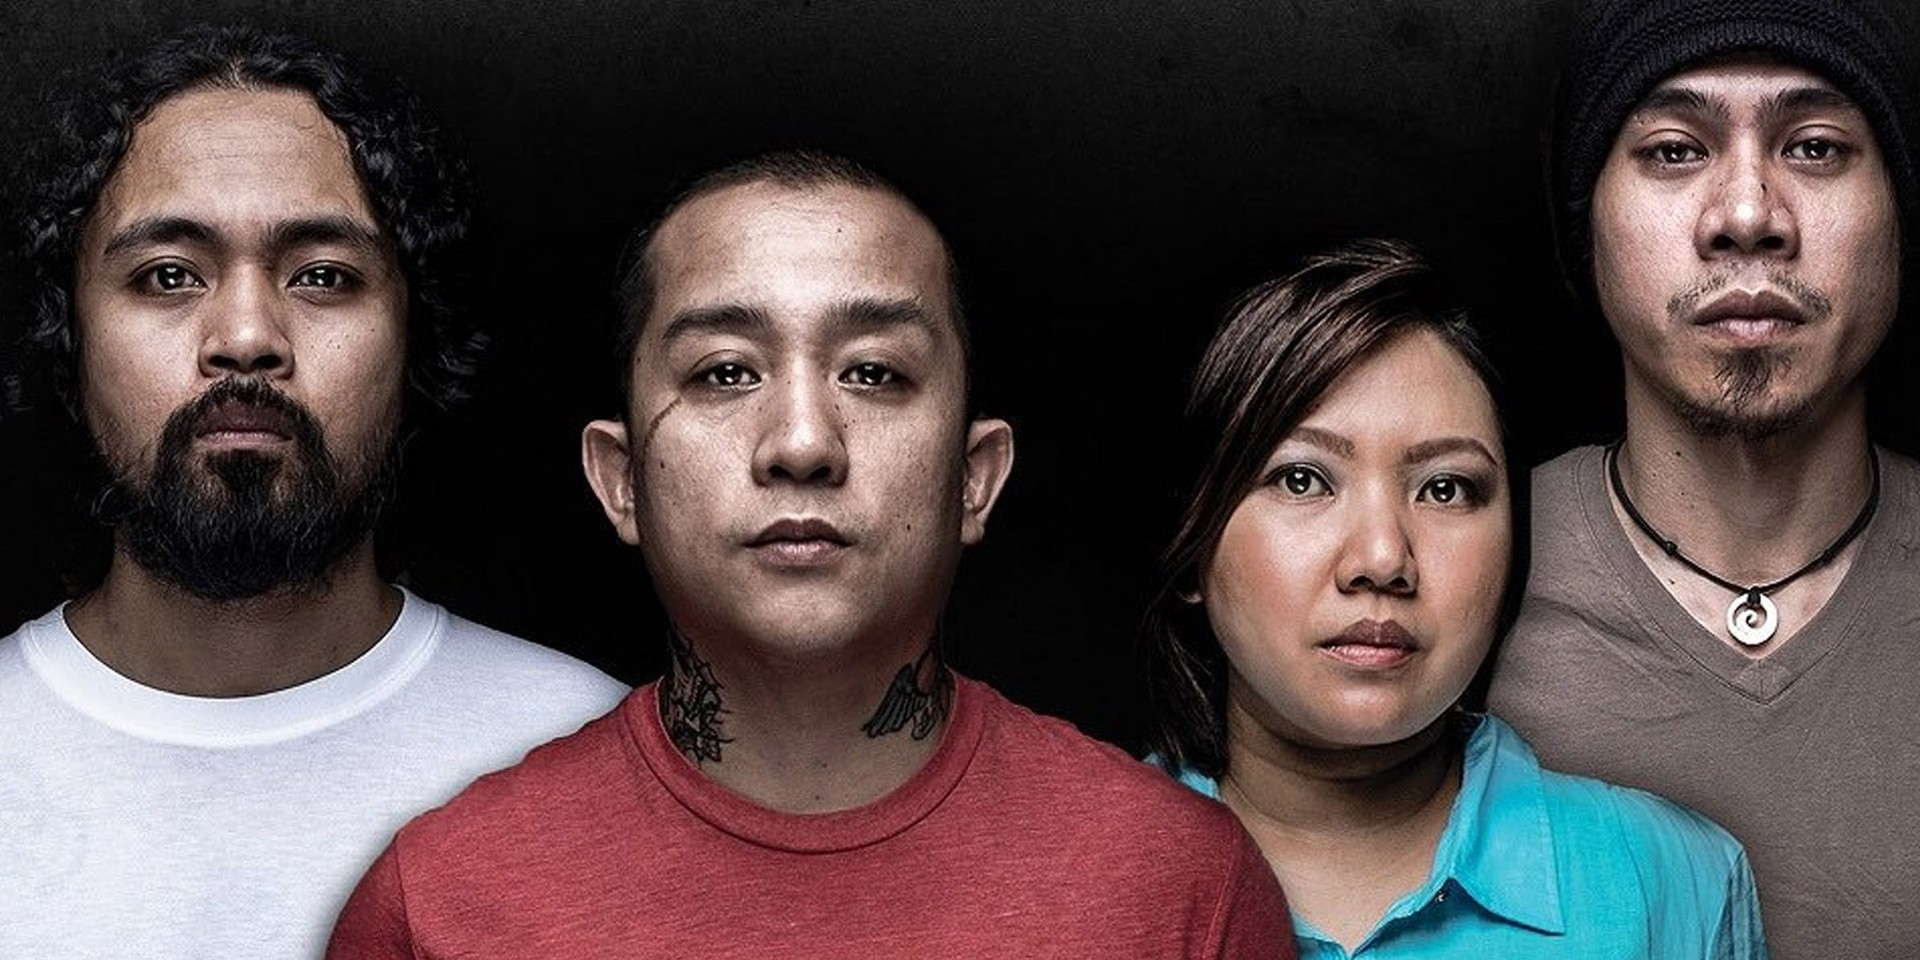 Urbandub to celebrate 20 years with special online concert this December